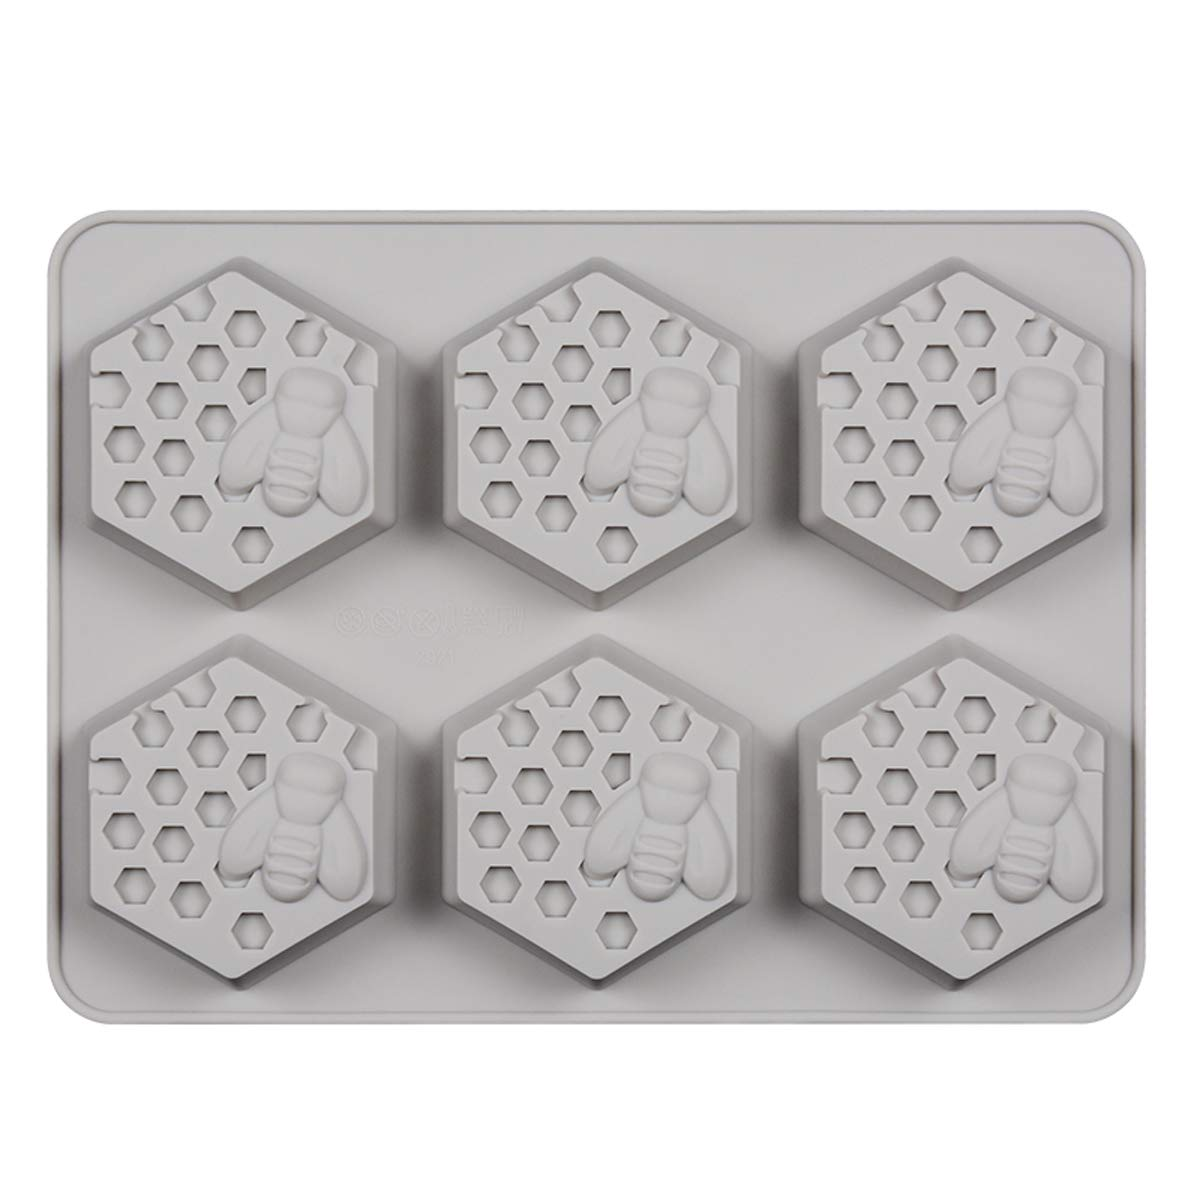 SJ Honeycomb Cake Molds for Kids, 19 Cavity Silicone Honey Comb Bees Soap Mold Cake Baking Moulds Pull-Apart Dessert Cake Pan Mold